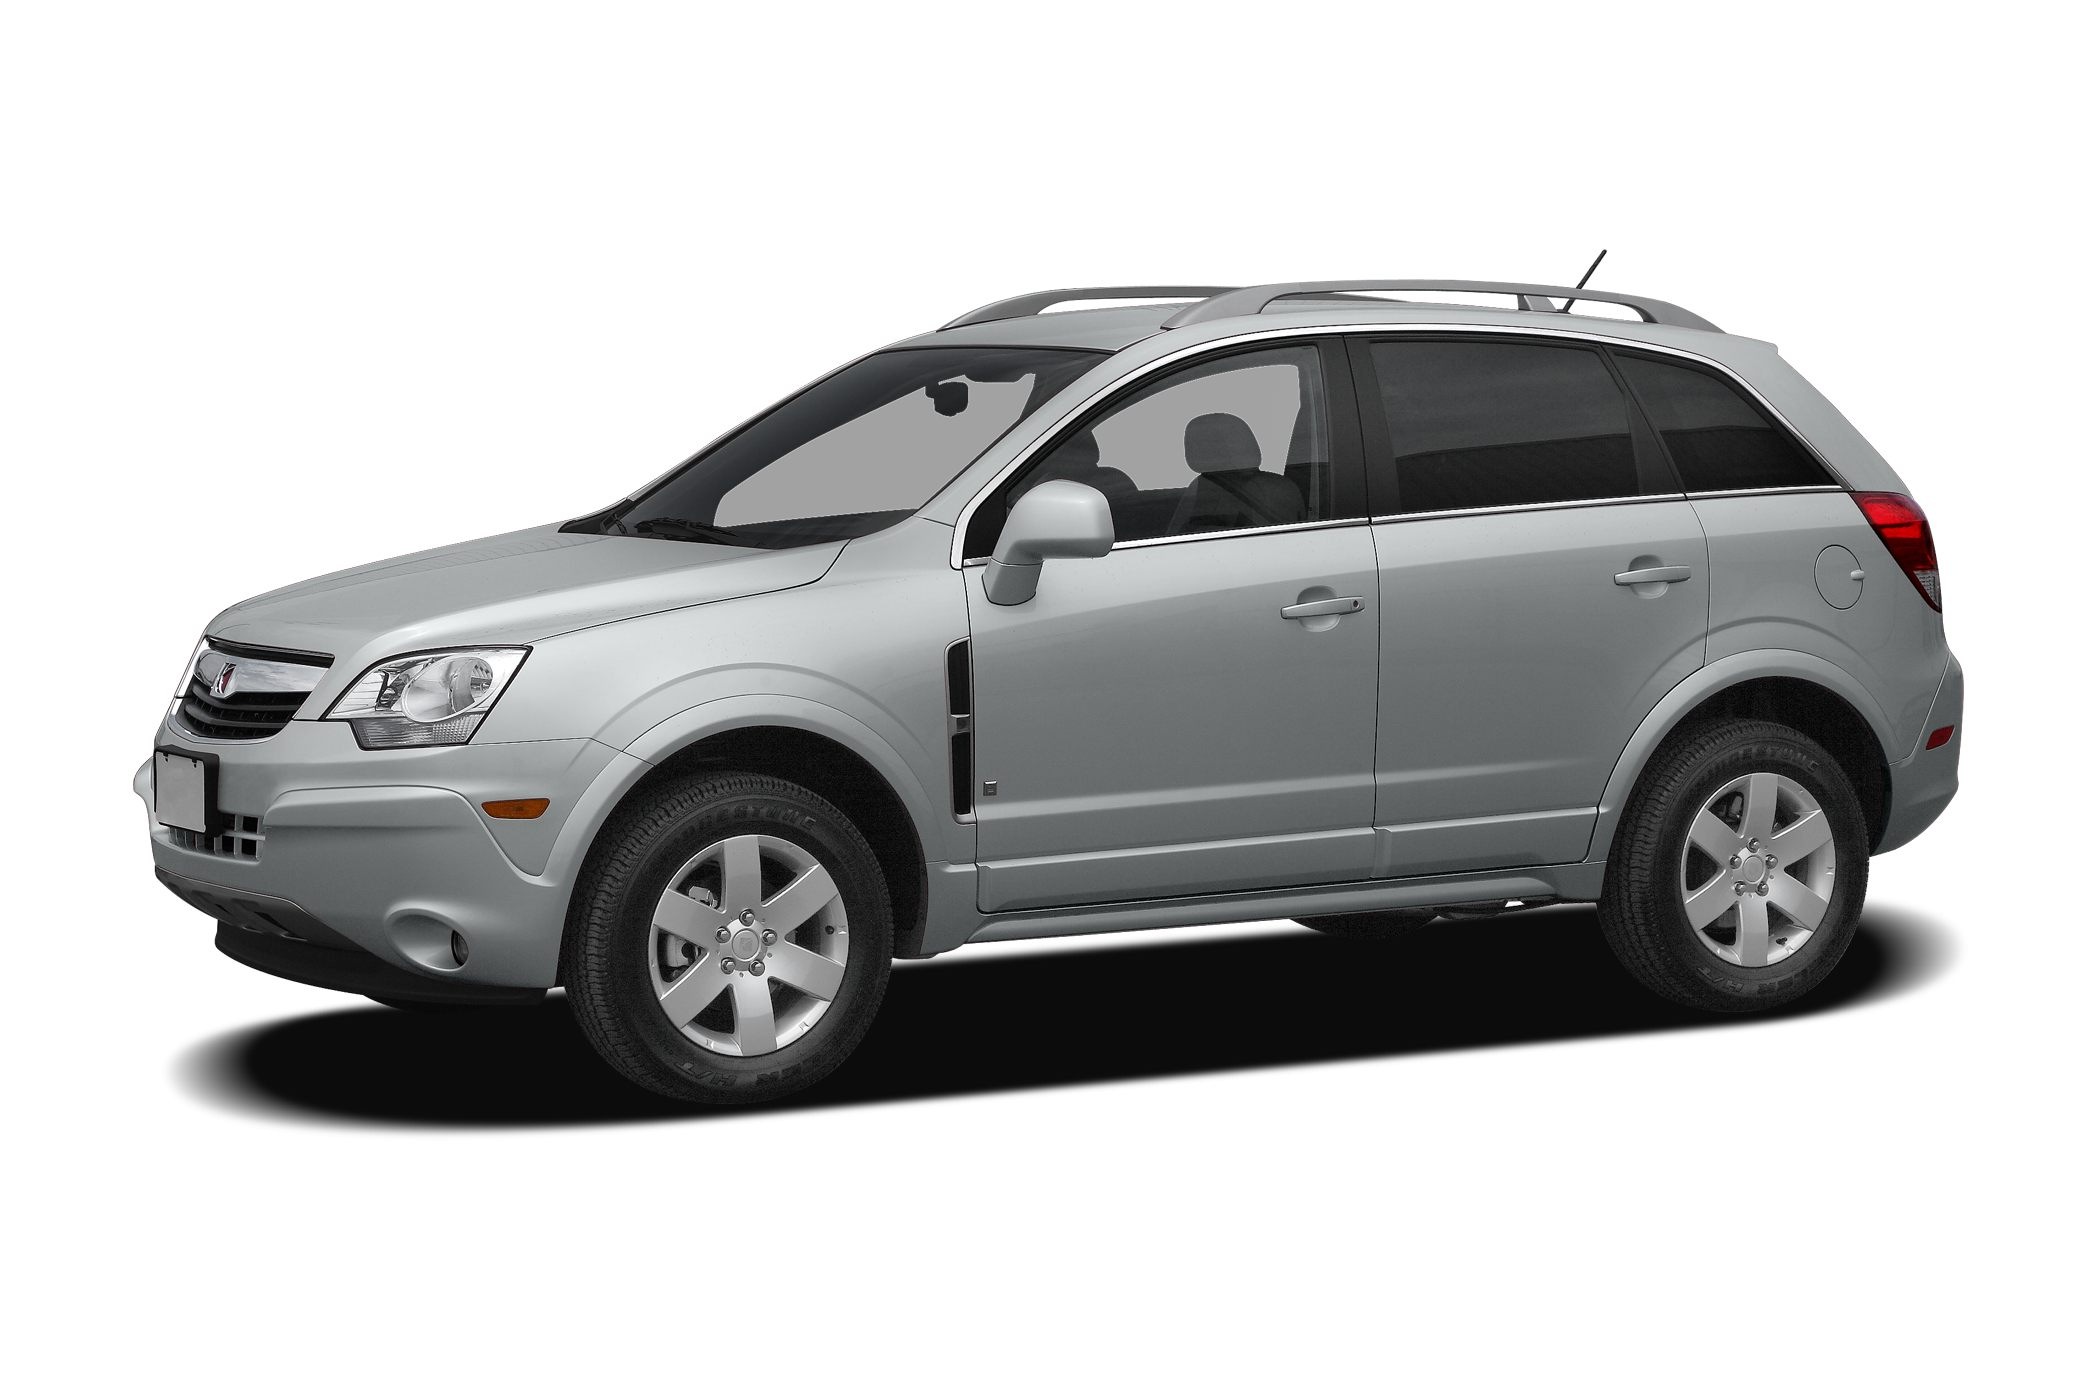 2009 Saturn Vue XE SUV for sale in Johnstown for $11,990 with 77,044 miles